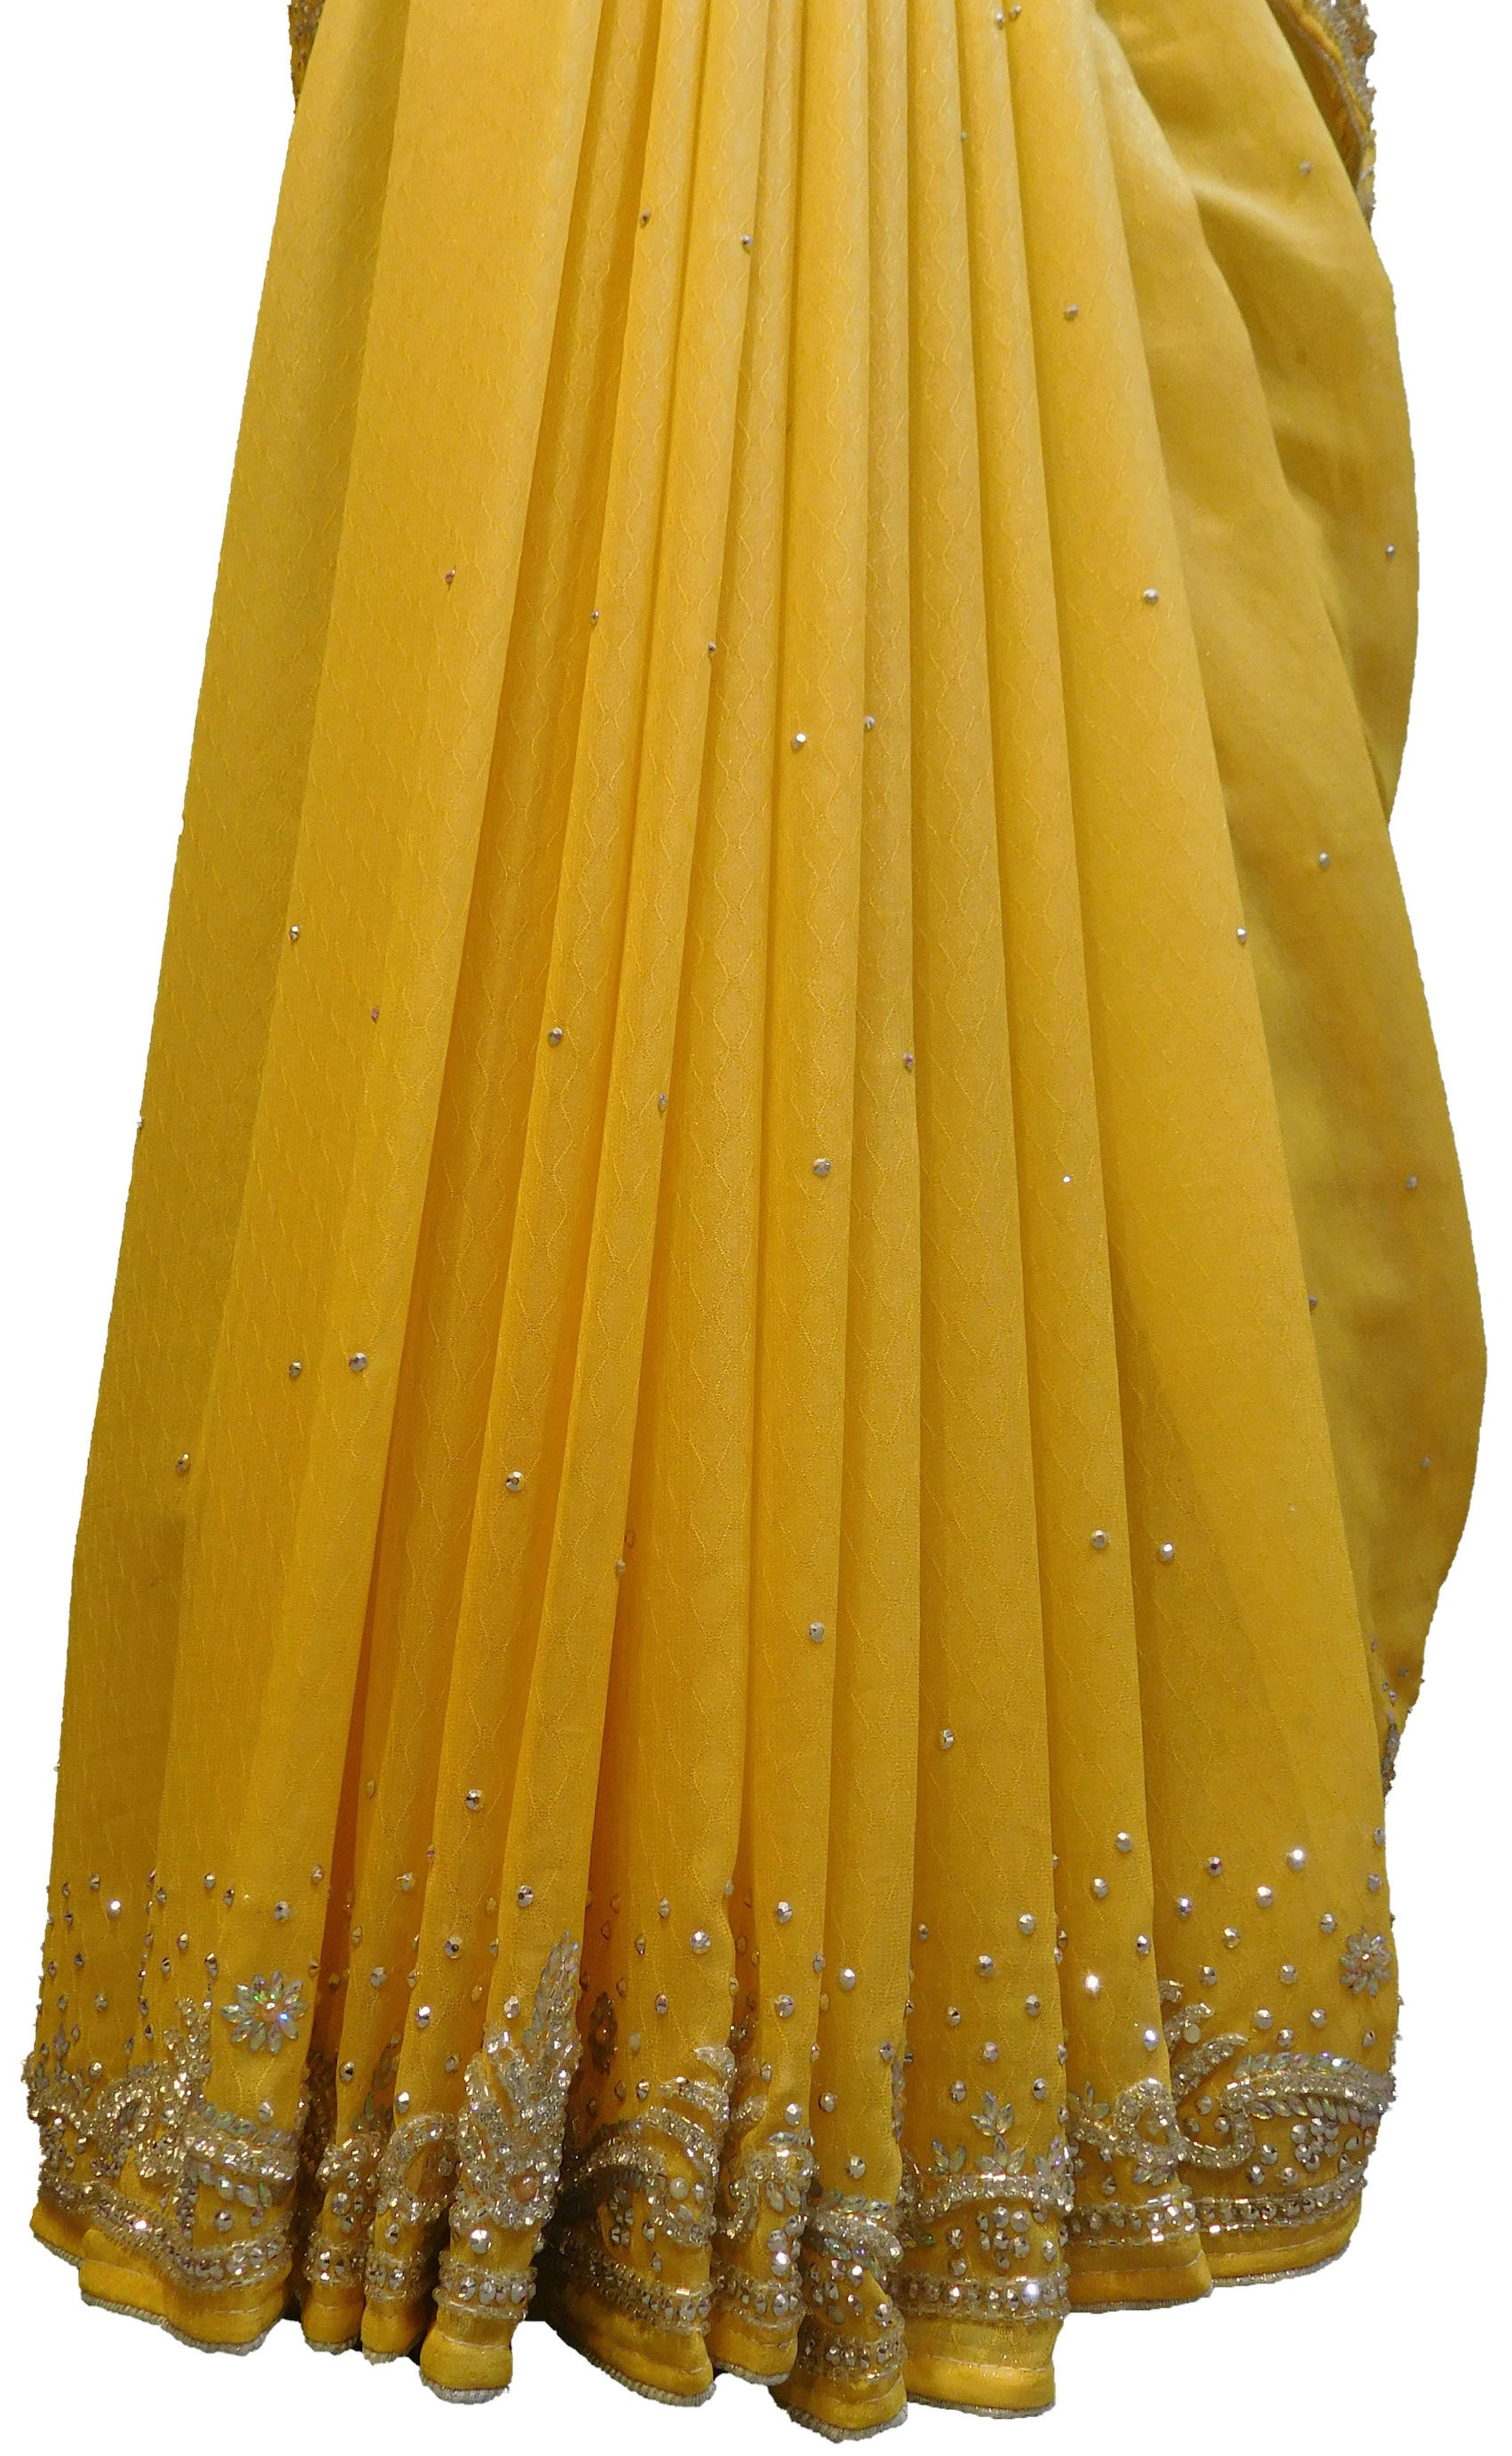 SMSAREE Yellow Designer Wedding Partywear Crepe (Chinon) Stone & Cutdana Hand Embroidery Work Bridal Saree Sari With Blouse Piece E698